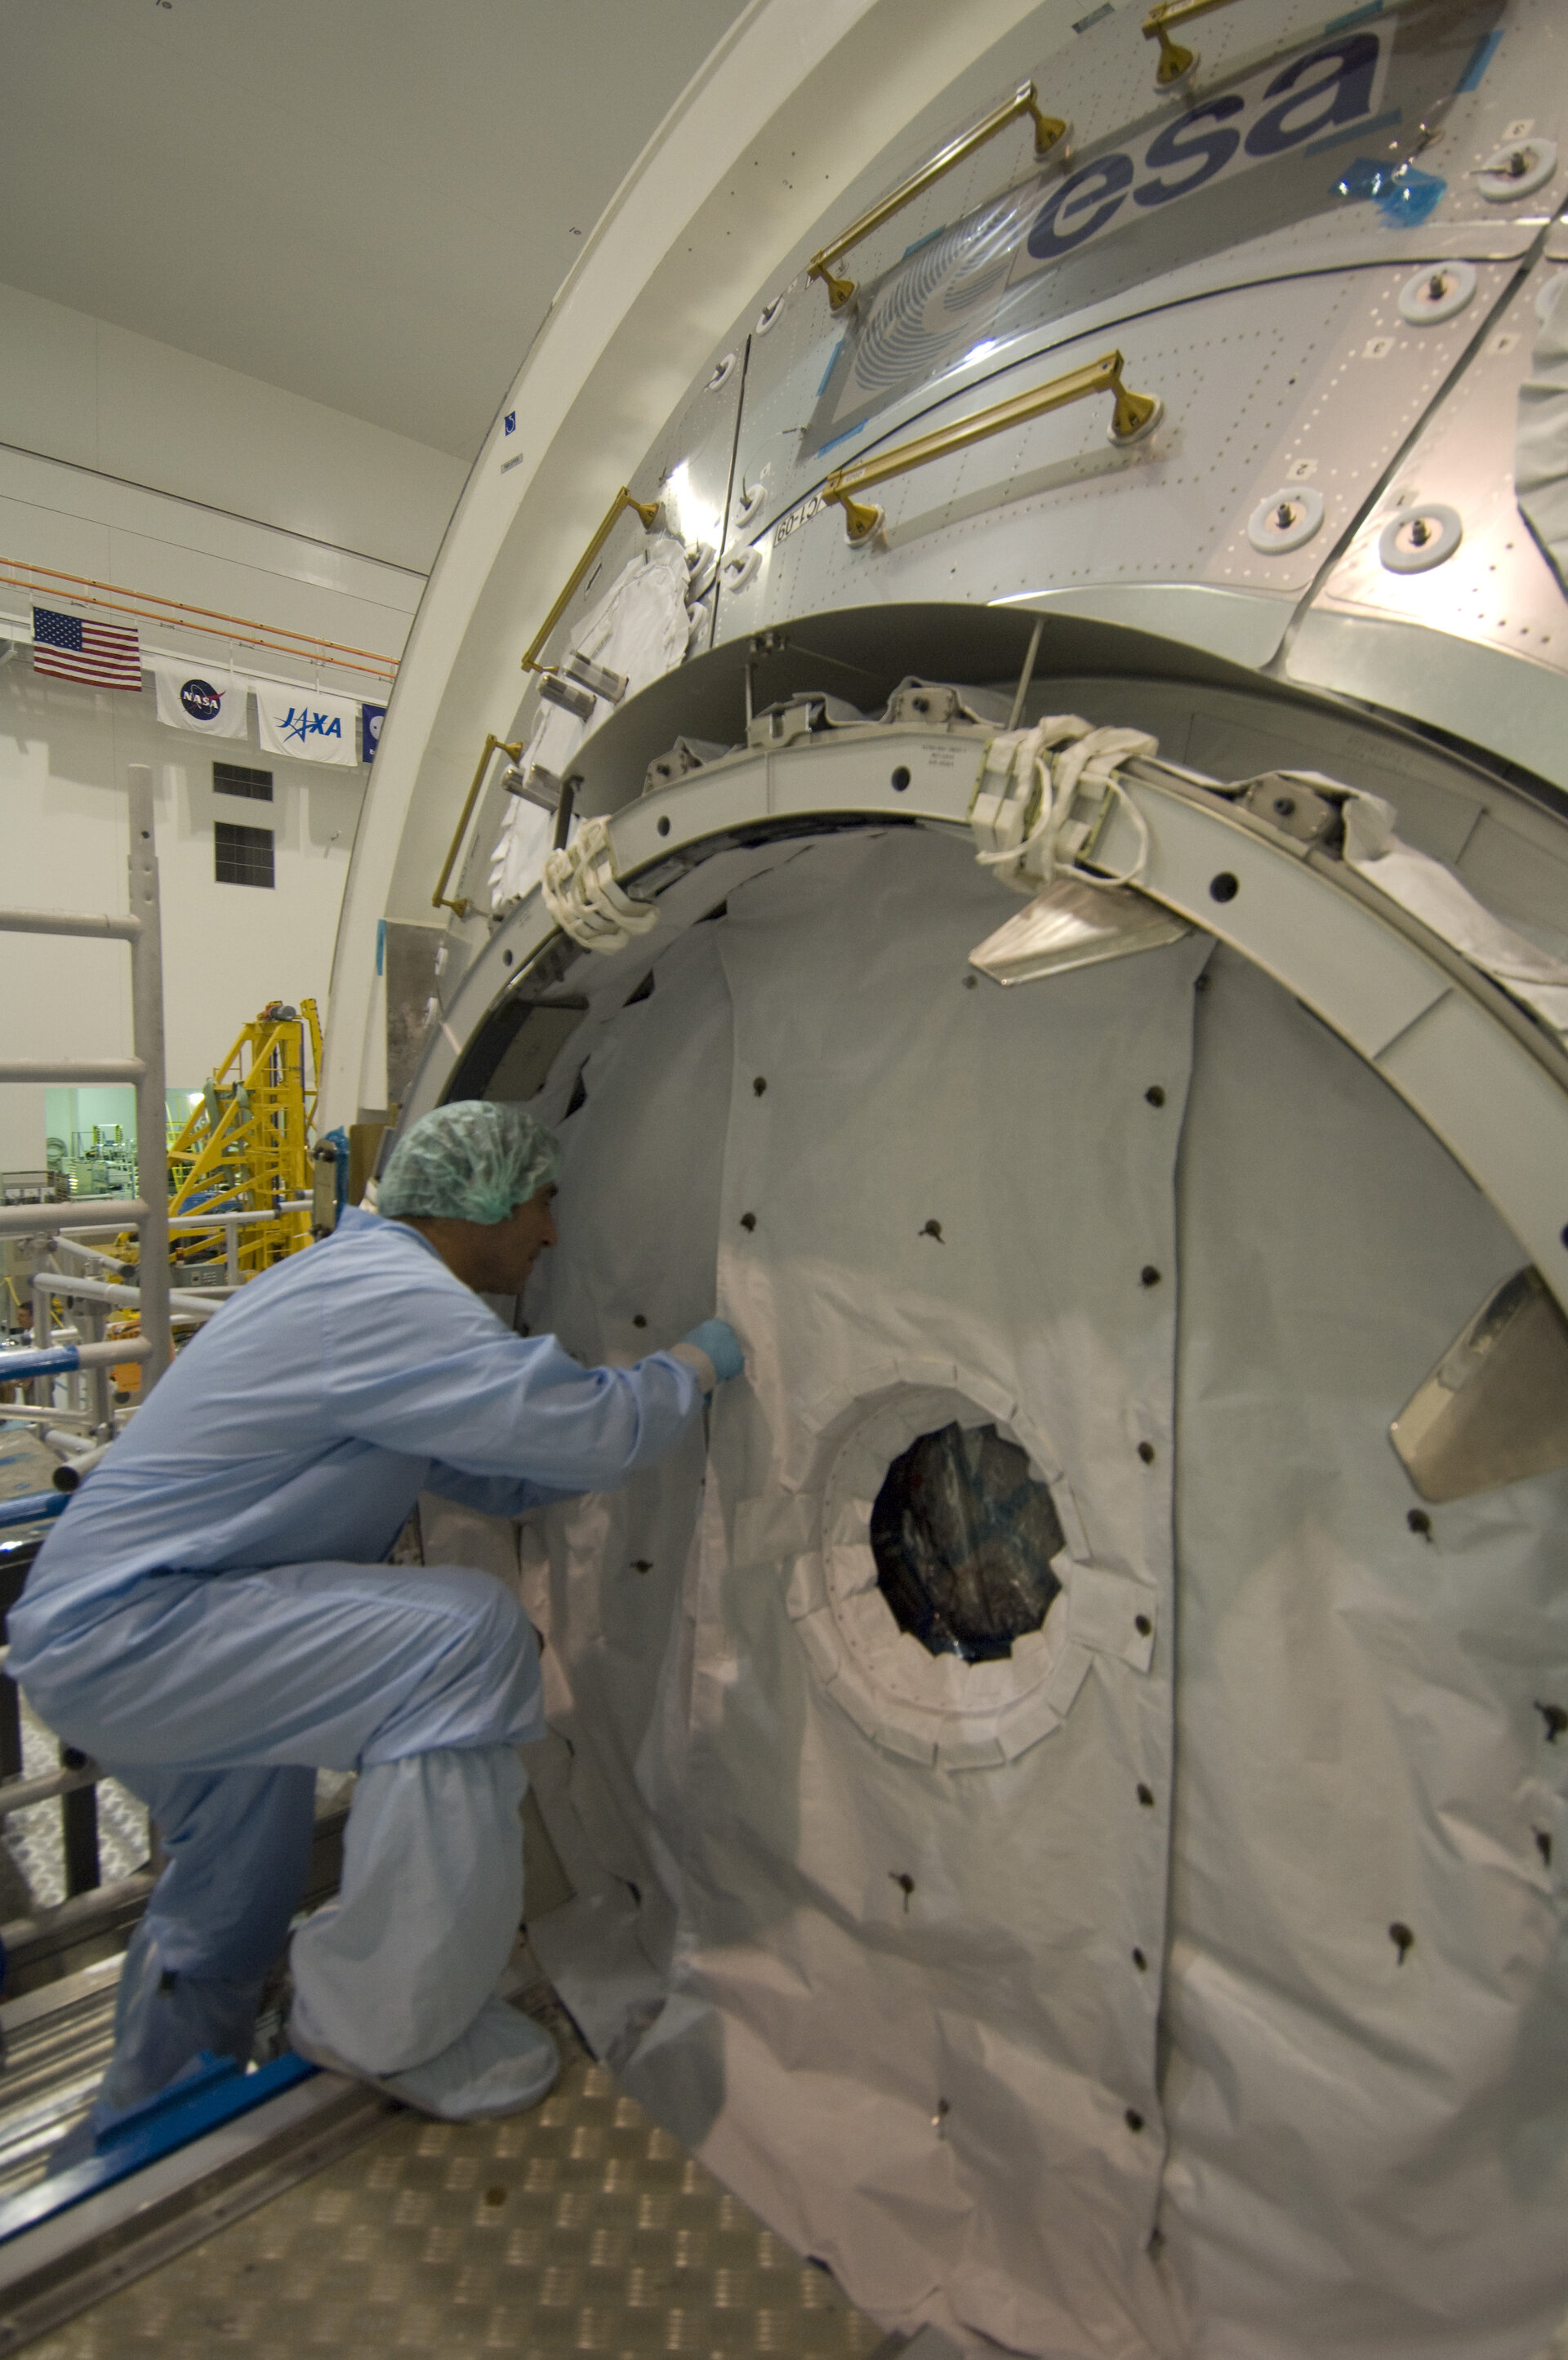 Columbus laboratory final hatch closure in NASA's Space Station Processing Facility